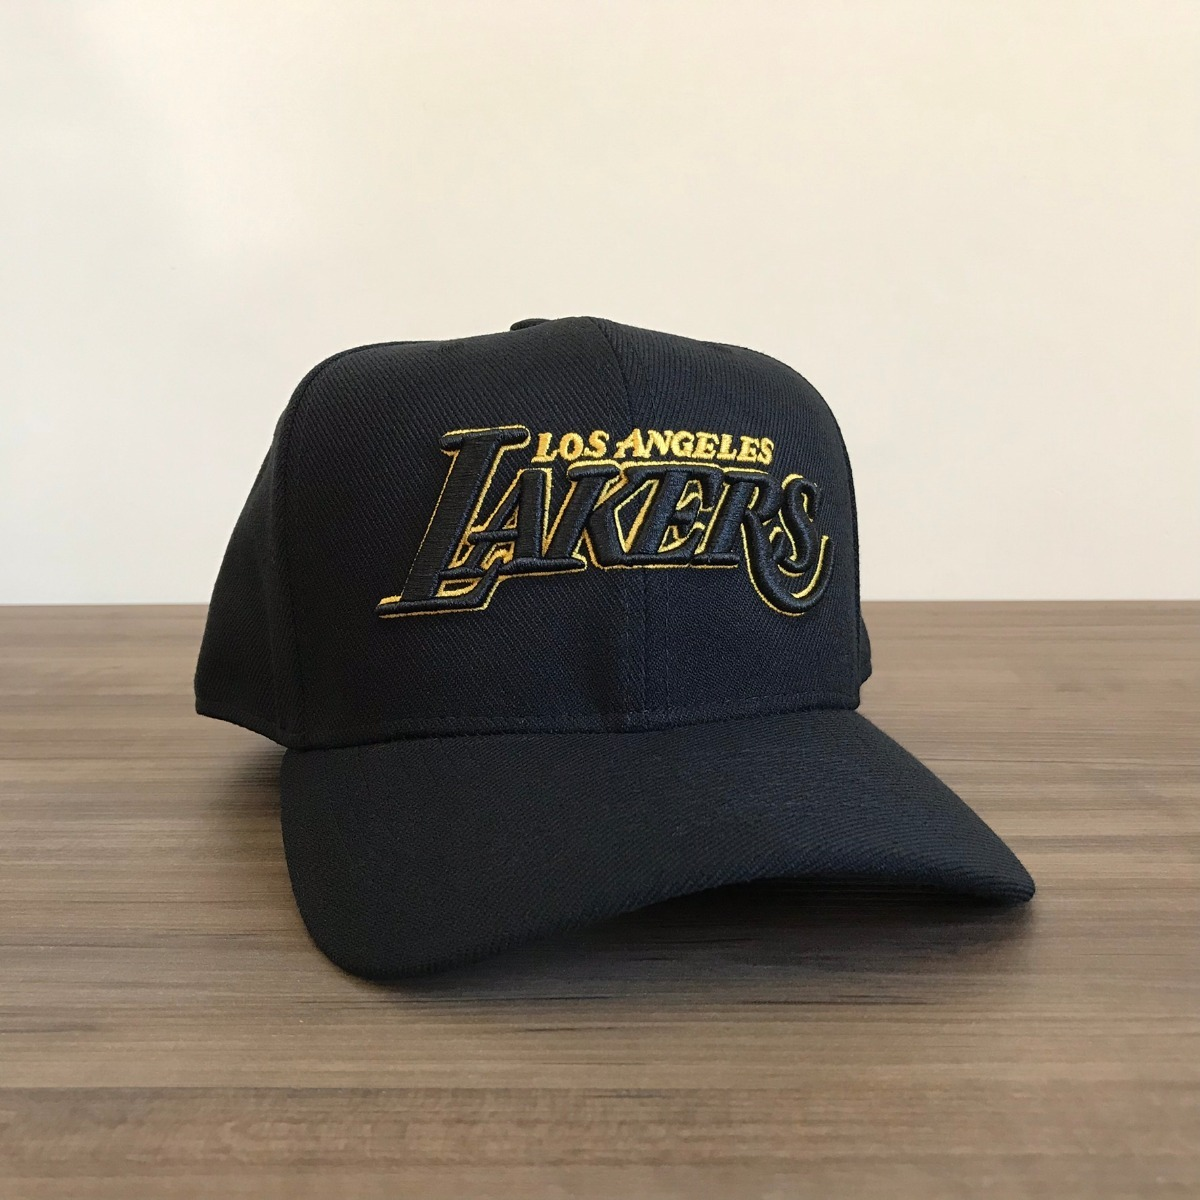 55436f0332 boné los angeles lakers hand black preto aba curva snapback. Carregando  zoom.